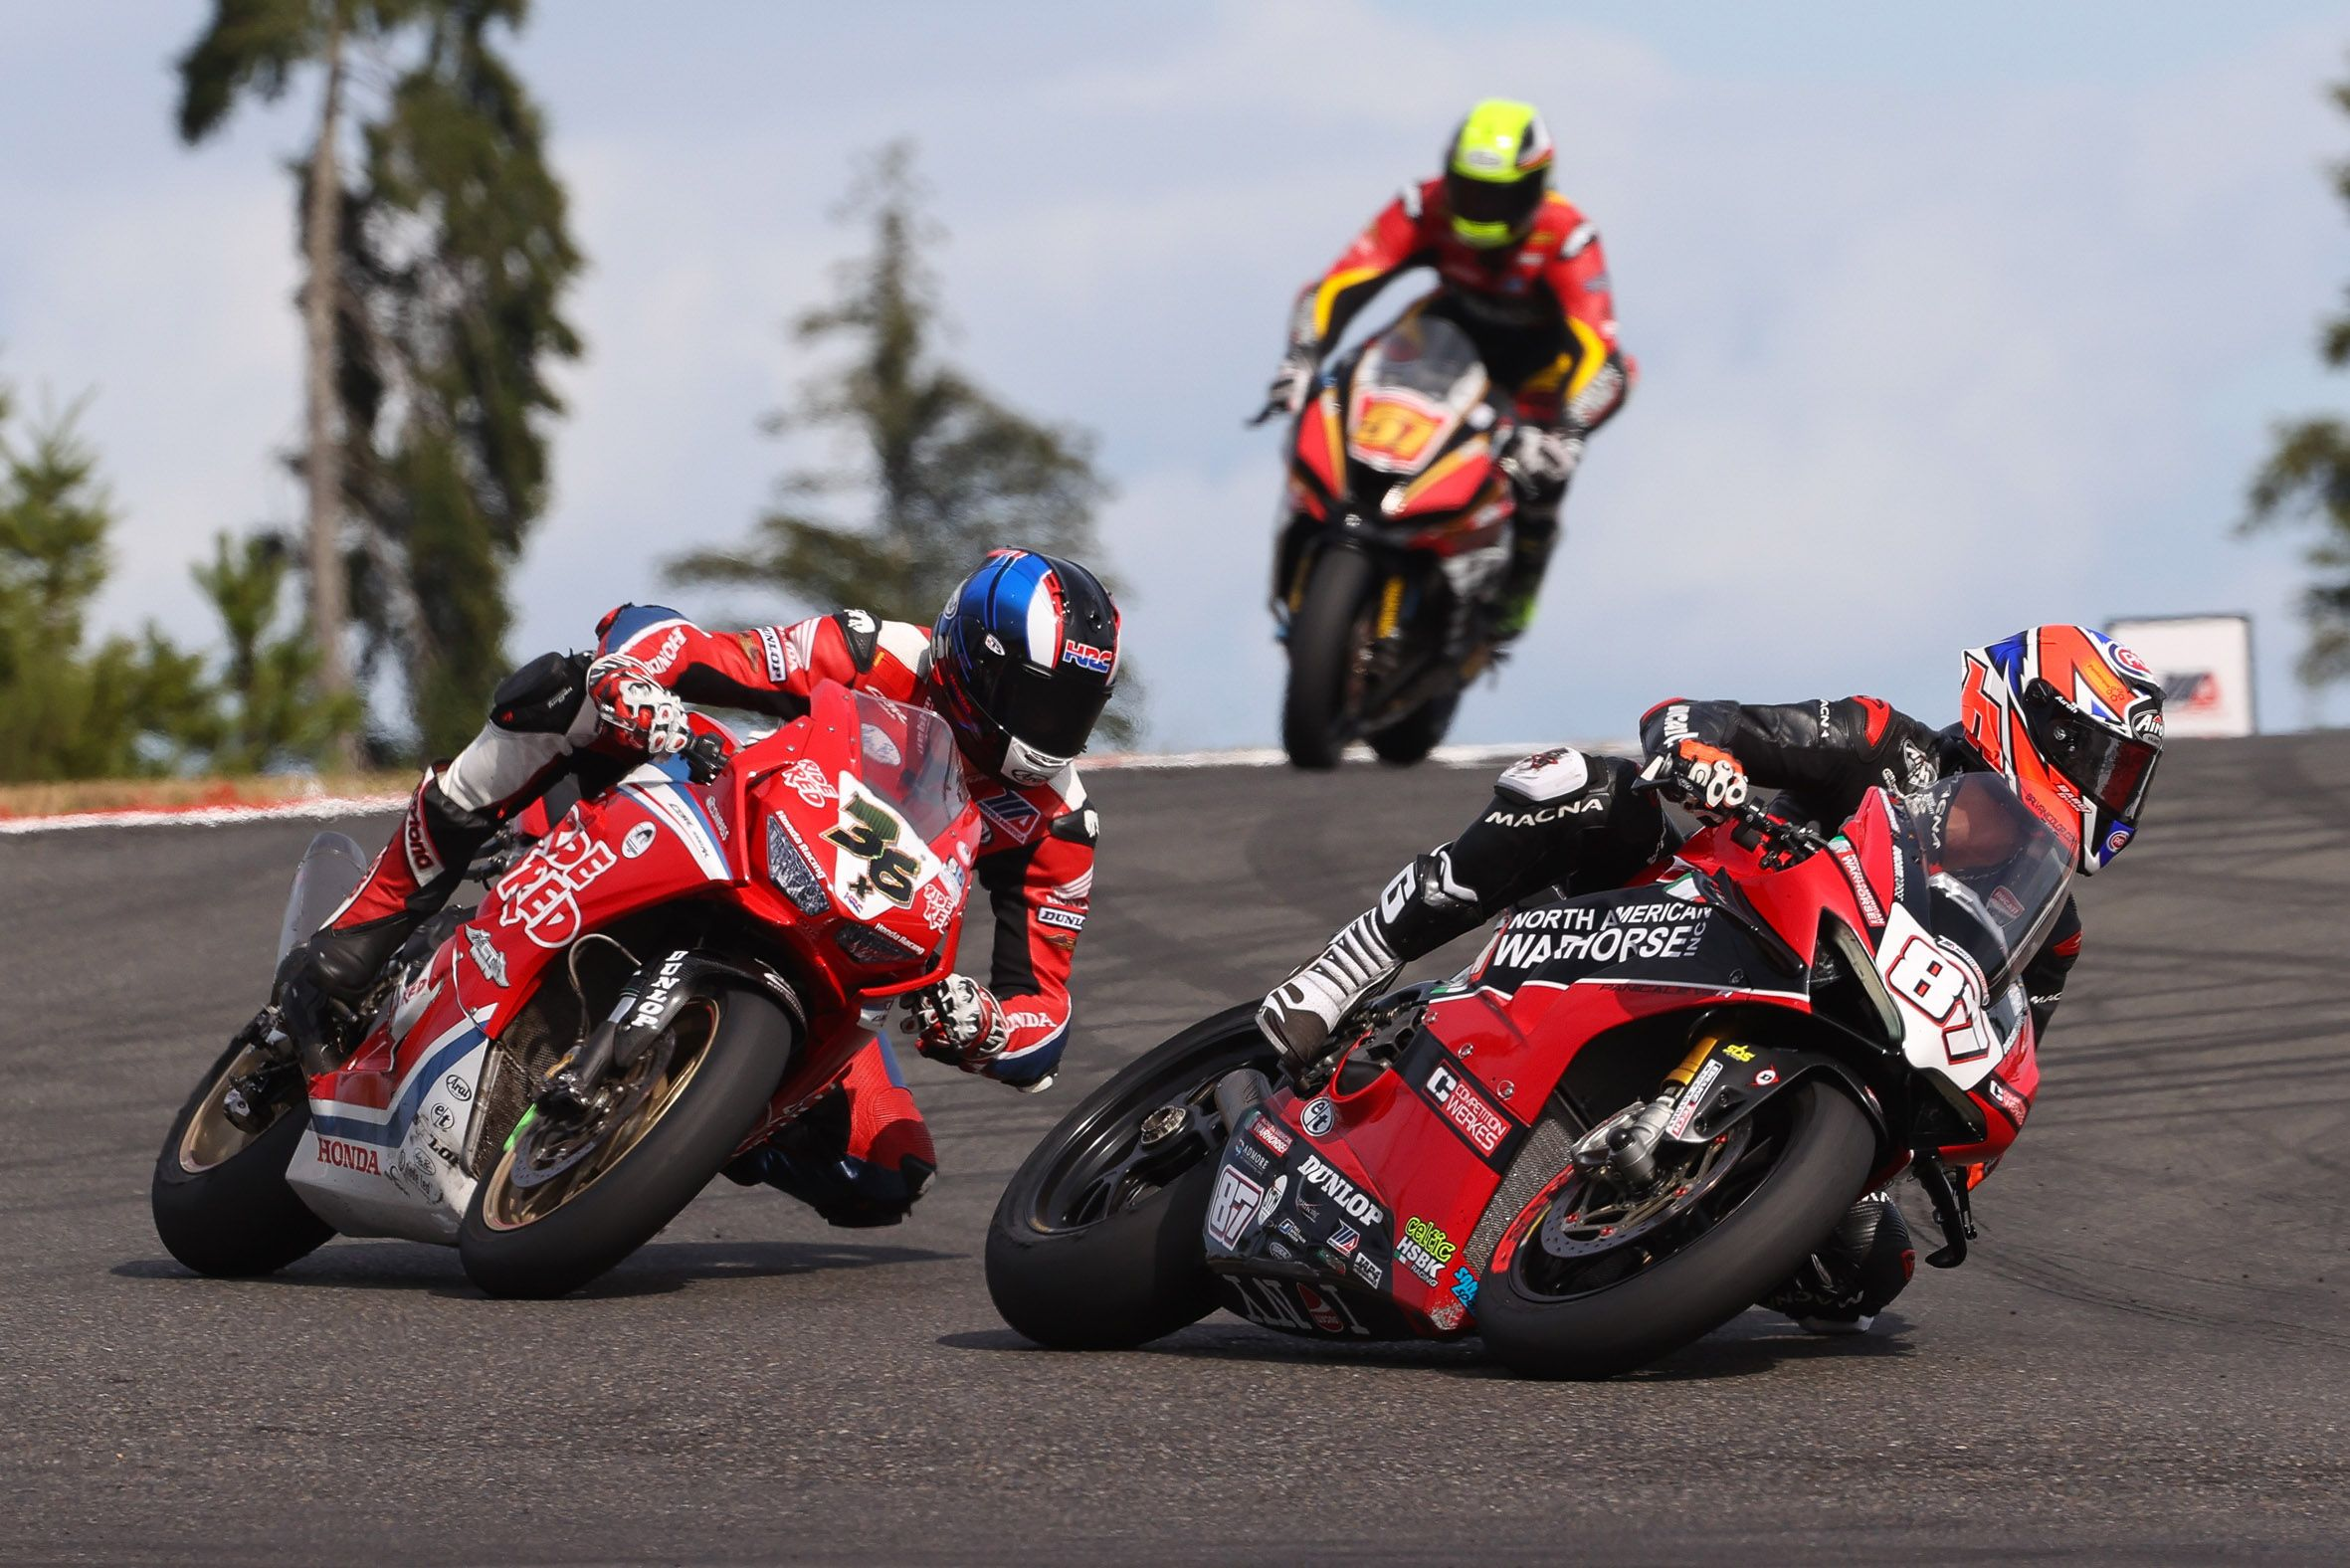 Kylewyman Struggles At Theridge As Zanetti Makes A Strong Motoamerica Impression Sunnyvale Calif August 30 2020 Motorcycle News Ducati Panigale Kyle